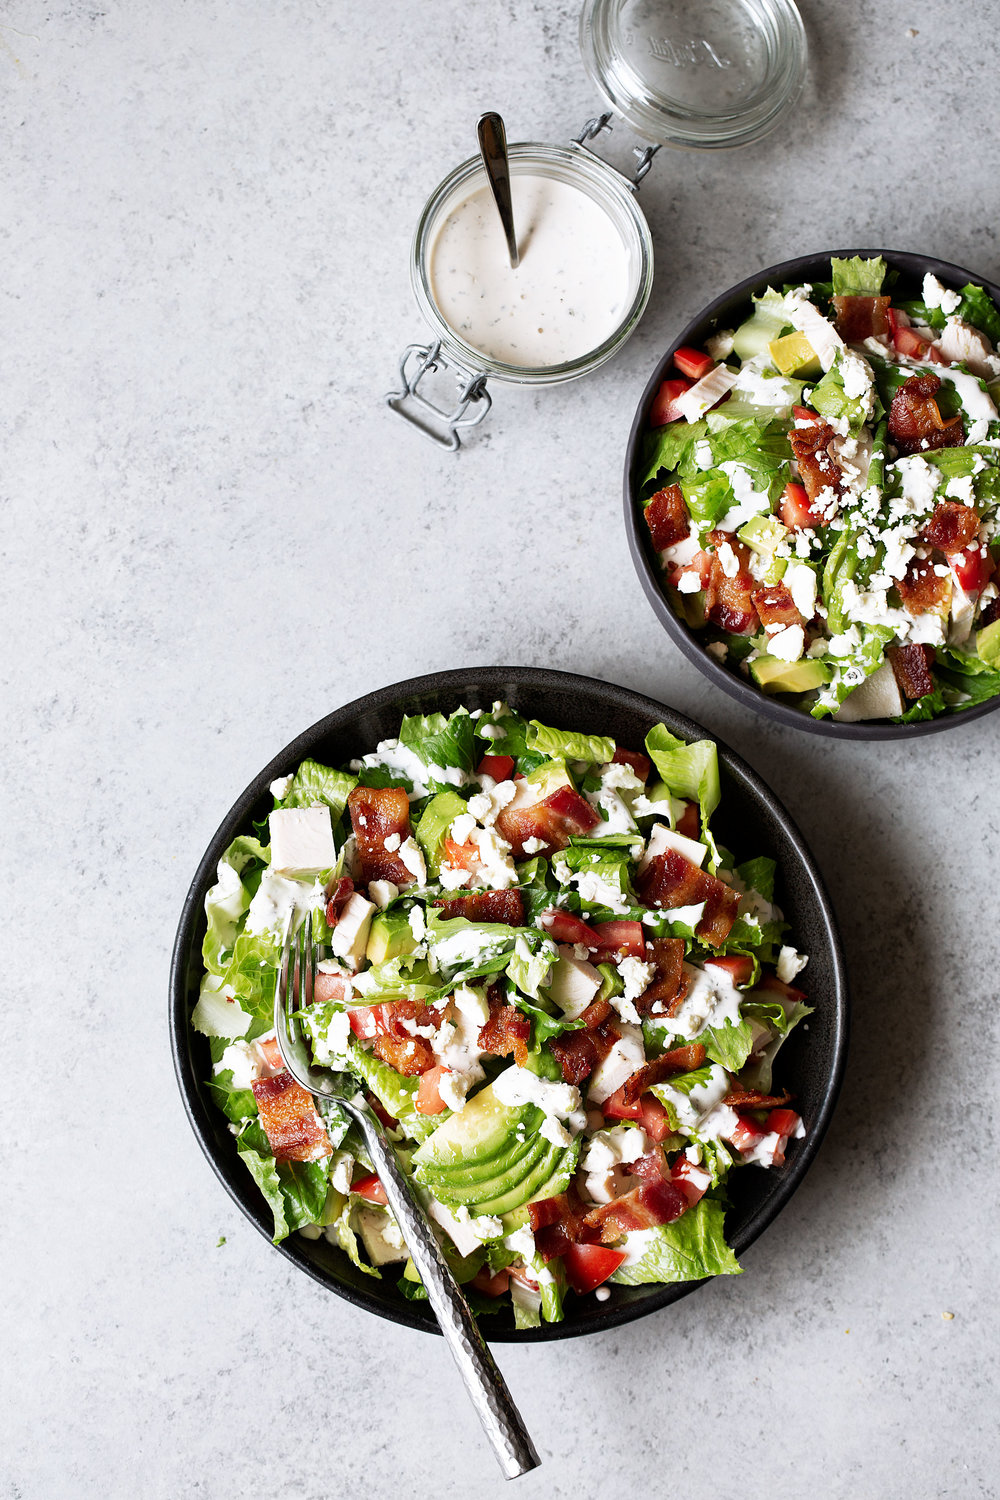 BLT salad recipe from cooking with cocktail rings